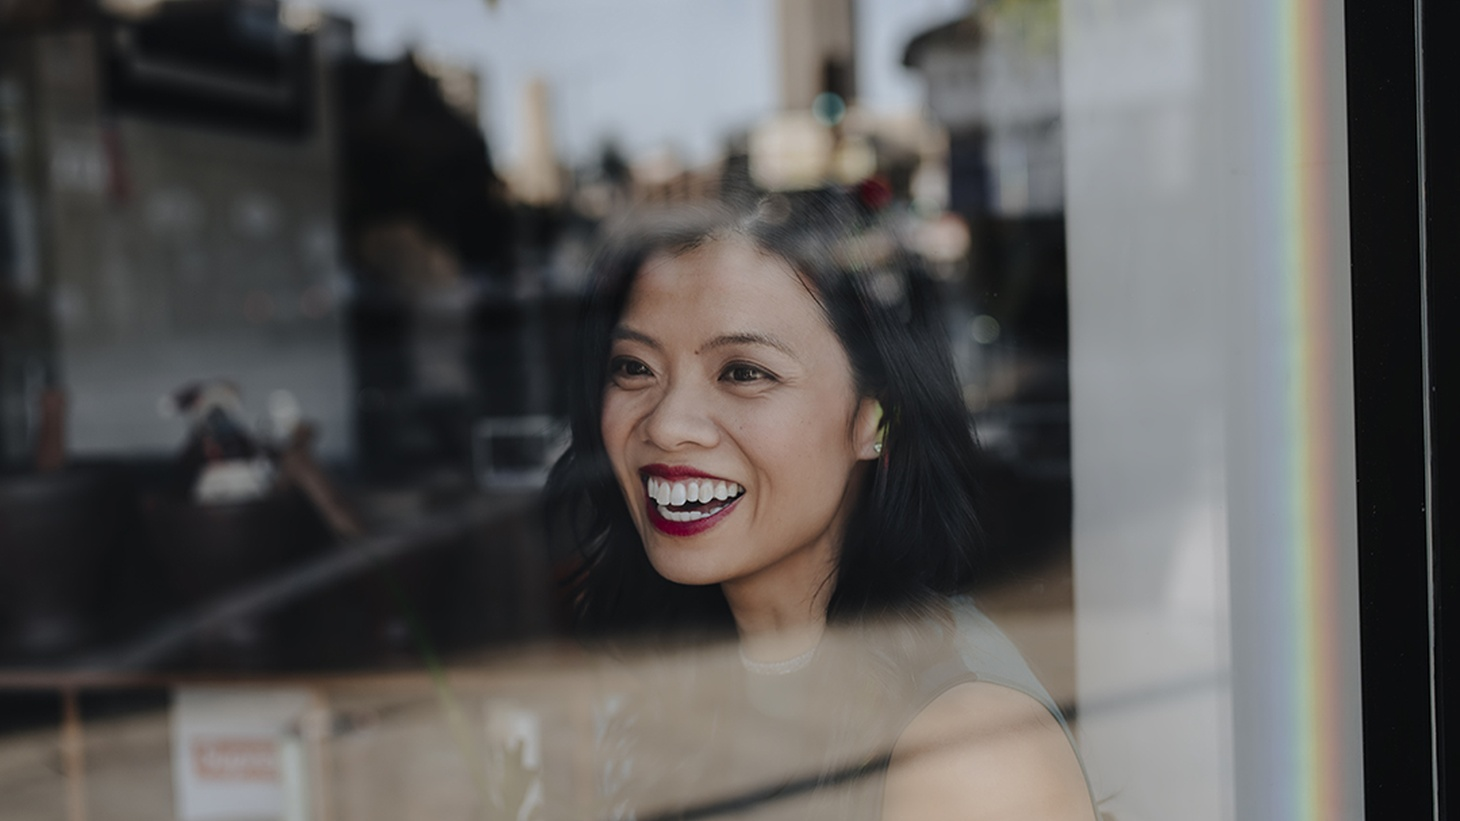 Lien Ta, founder of LA restaurants Here's Looking at You and All Day Baby, reflects on why business trouble caused by COVID shutdowns helped her to discover an interest in politics.